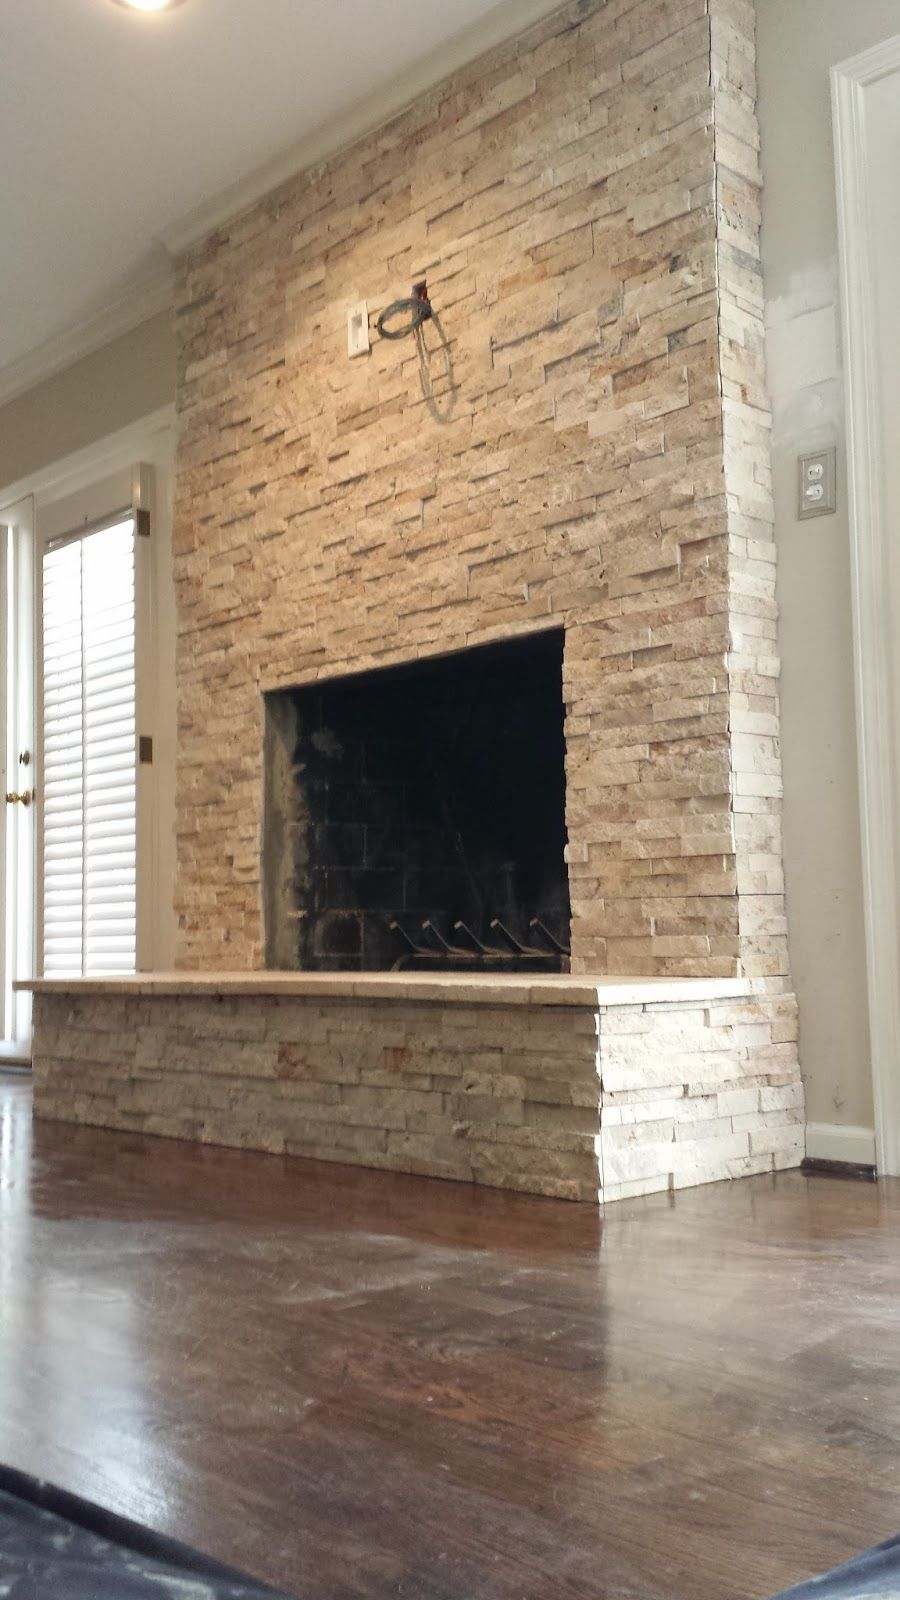 Fireplace Rock Ideas stacked stone fireplace - google search | bedford road | pinterest